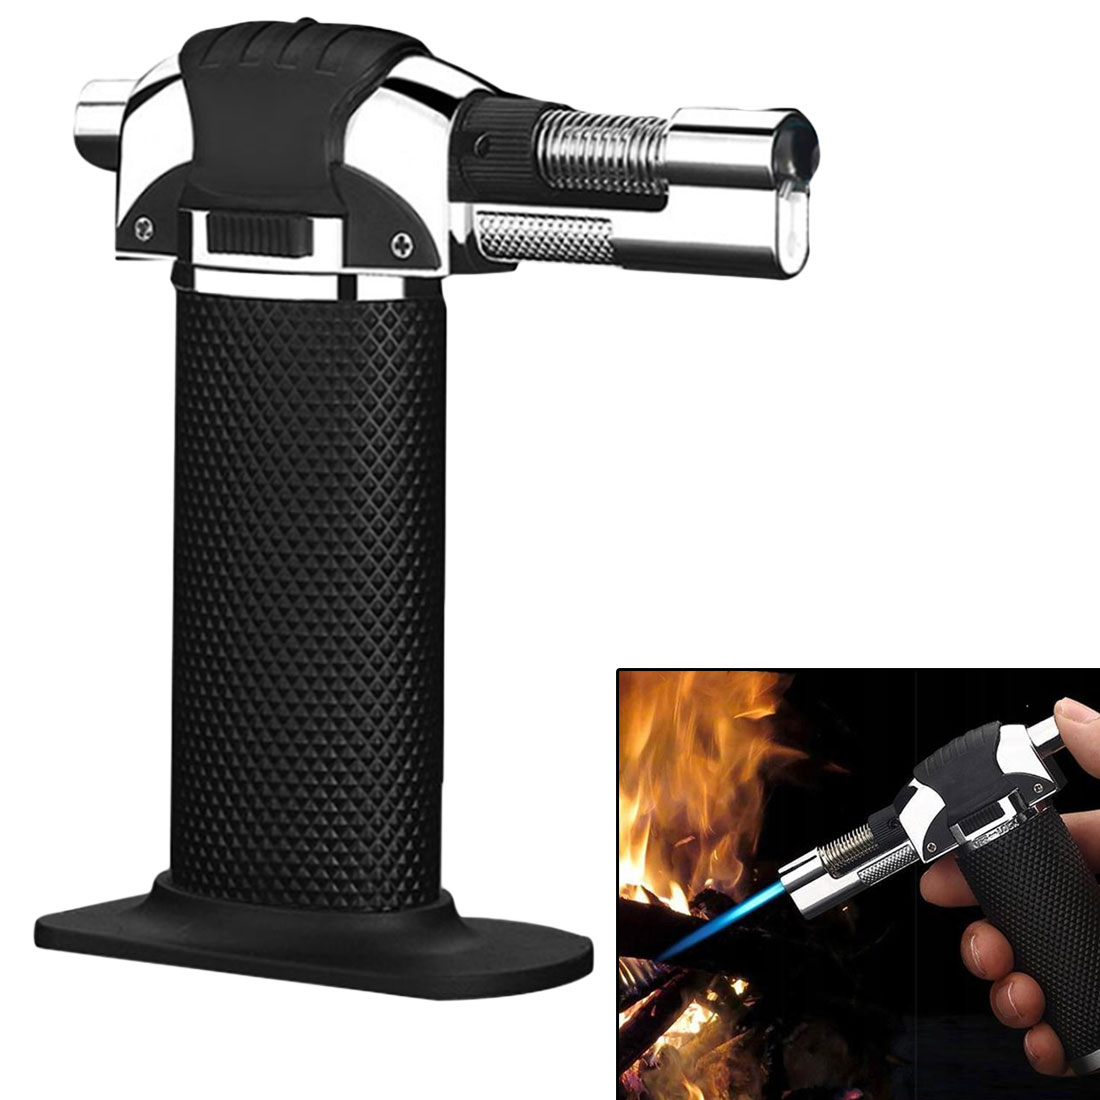 Butane Lighter Burning Electricity Lighter BBQ Brazing Gas Torch Gas Adjustable Flame Inflated Flame Gun Welding Outdoor CampingButane Lighter Burning Electricity Lighter BBQ Brazing Gas Torch Gas Adjustable Flame Inflated Flame Gun Welding Outdoor Camping